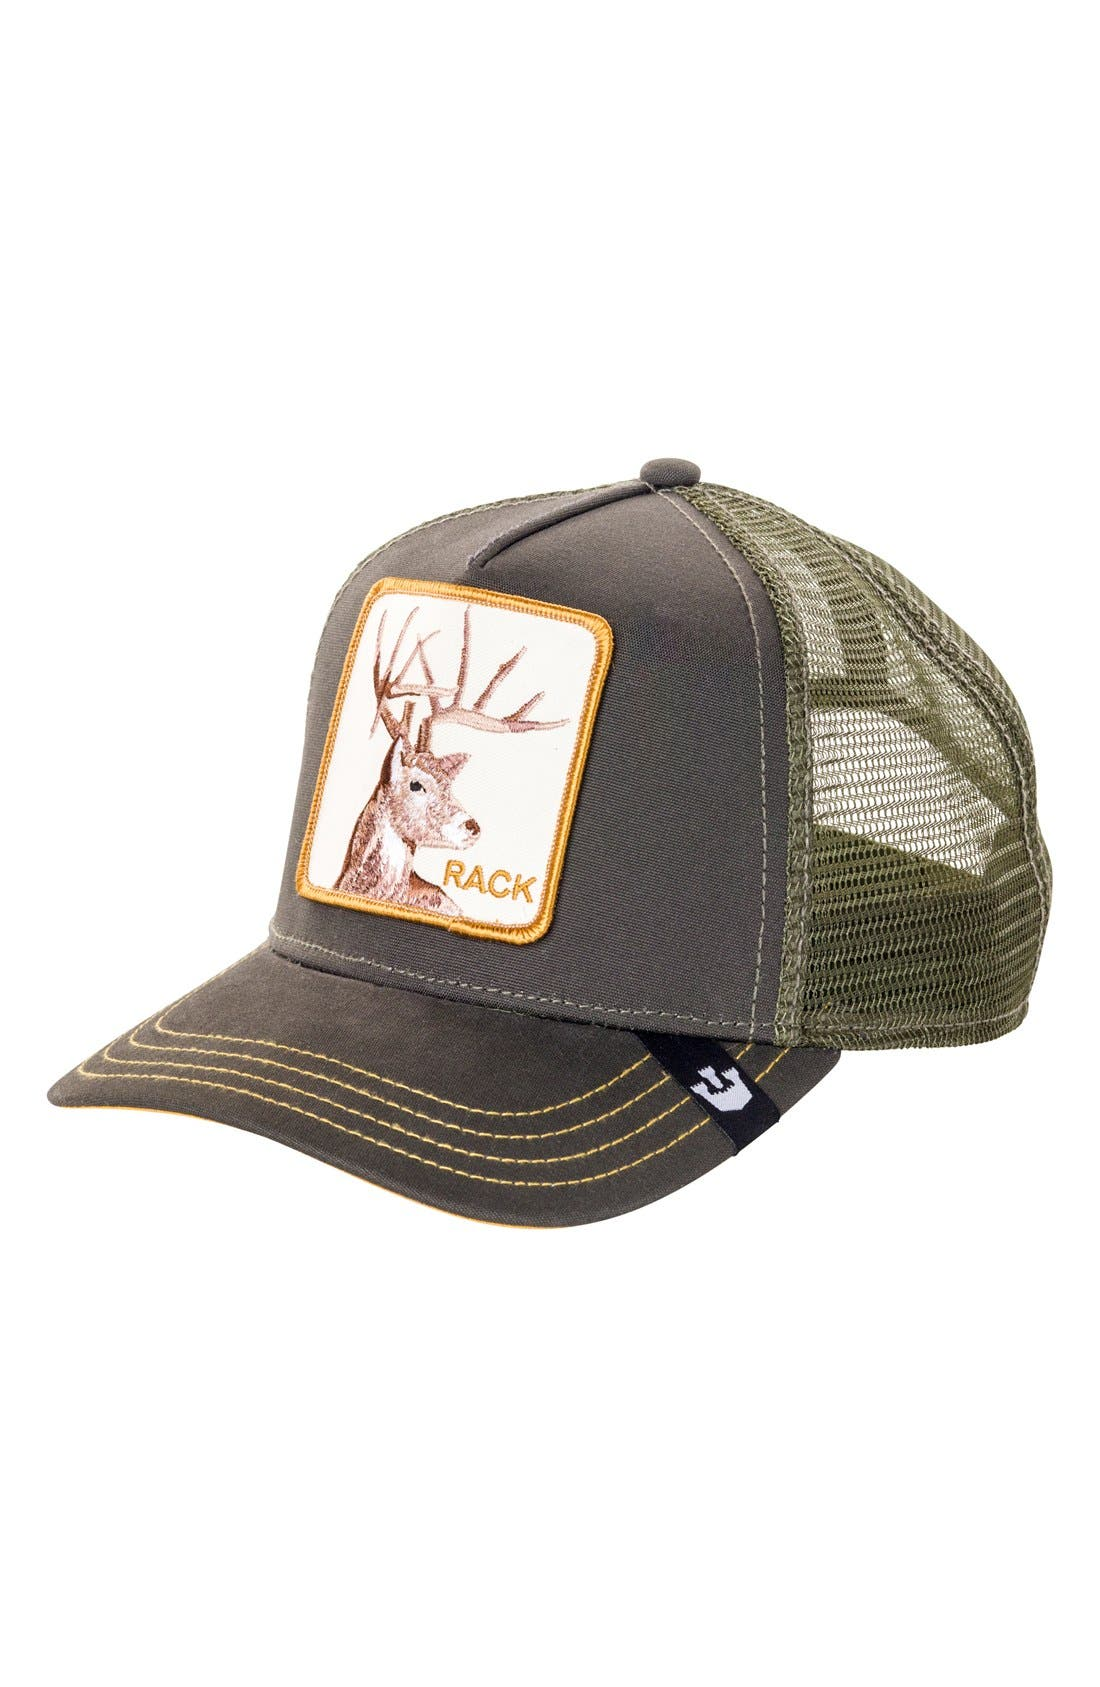 'Animal Farm - Rack' Trucker Hat,                         Main,                         color, Olive